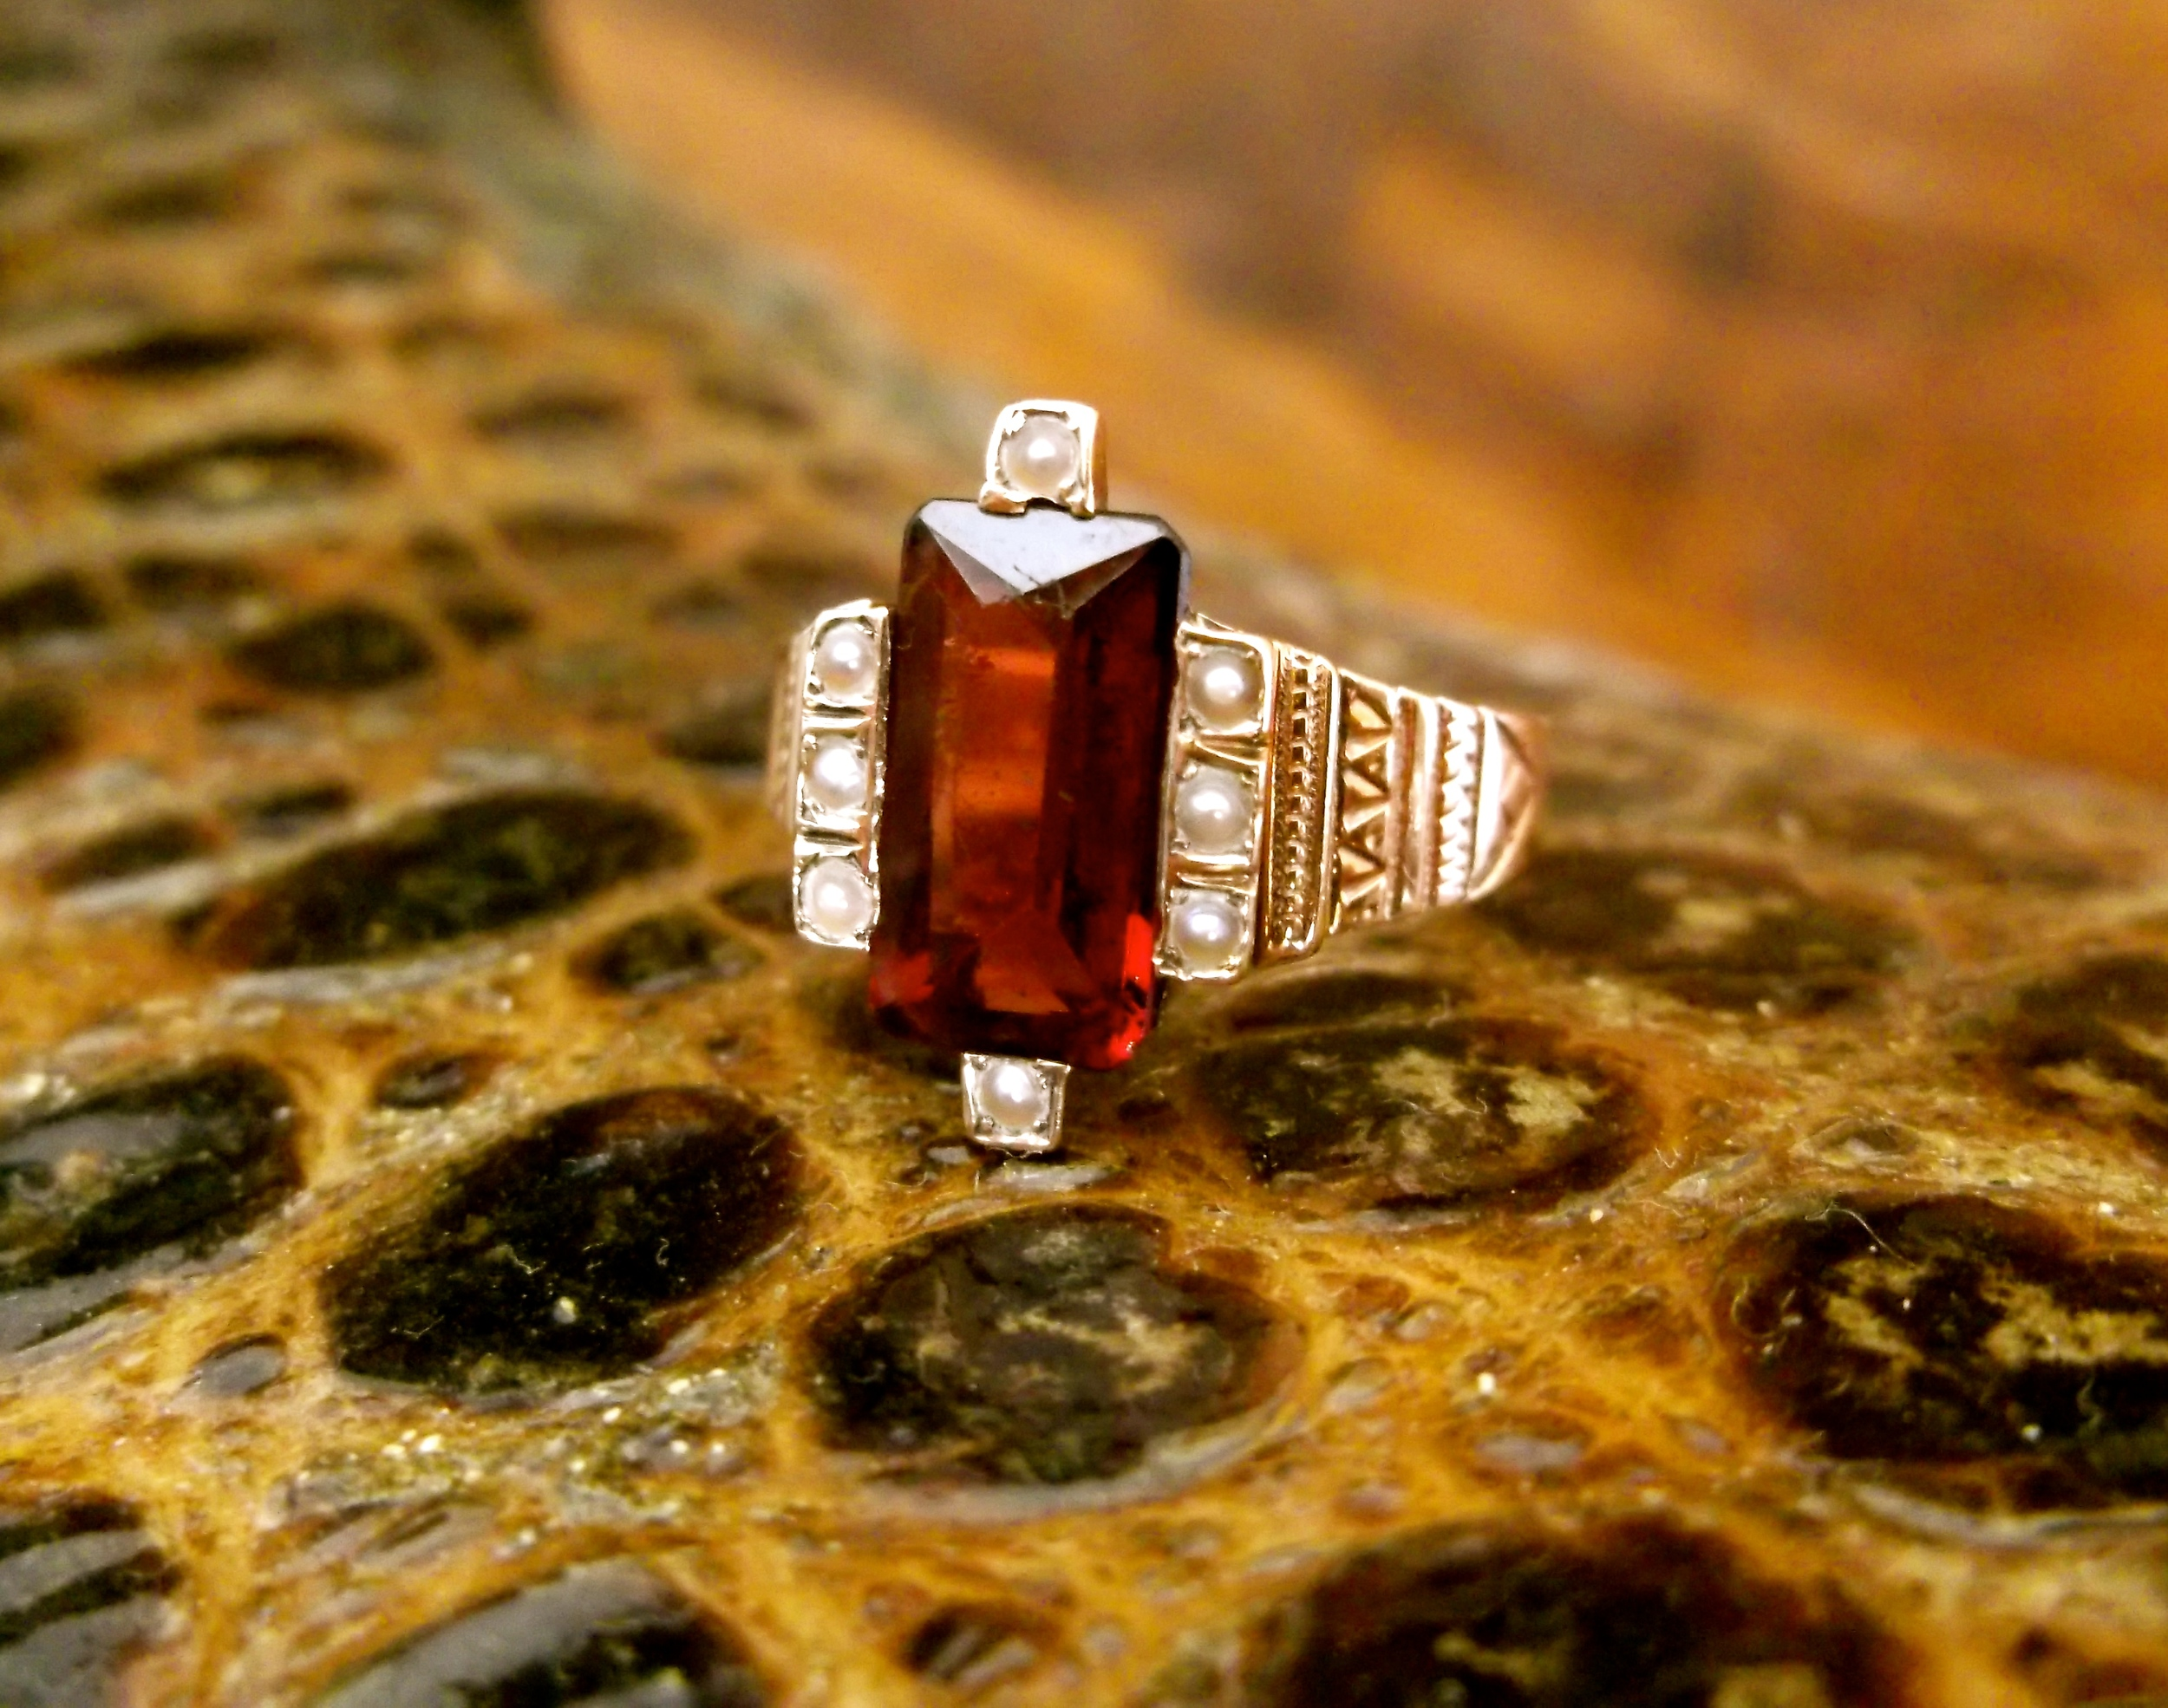 SOLD - Beautiful Victorian Era garnet and seed pearl ring set in a yellow hand engraved detail mounting.